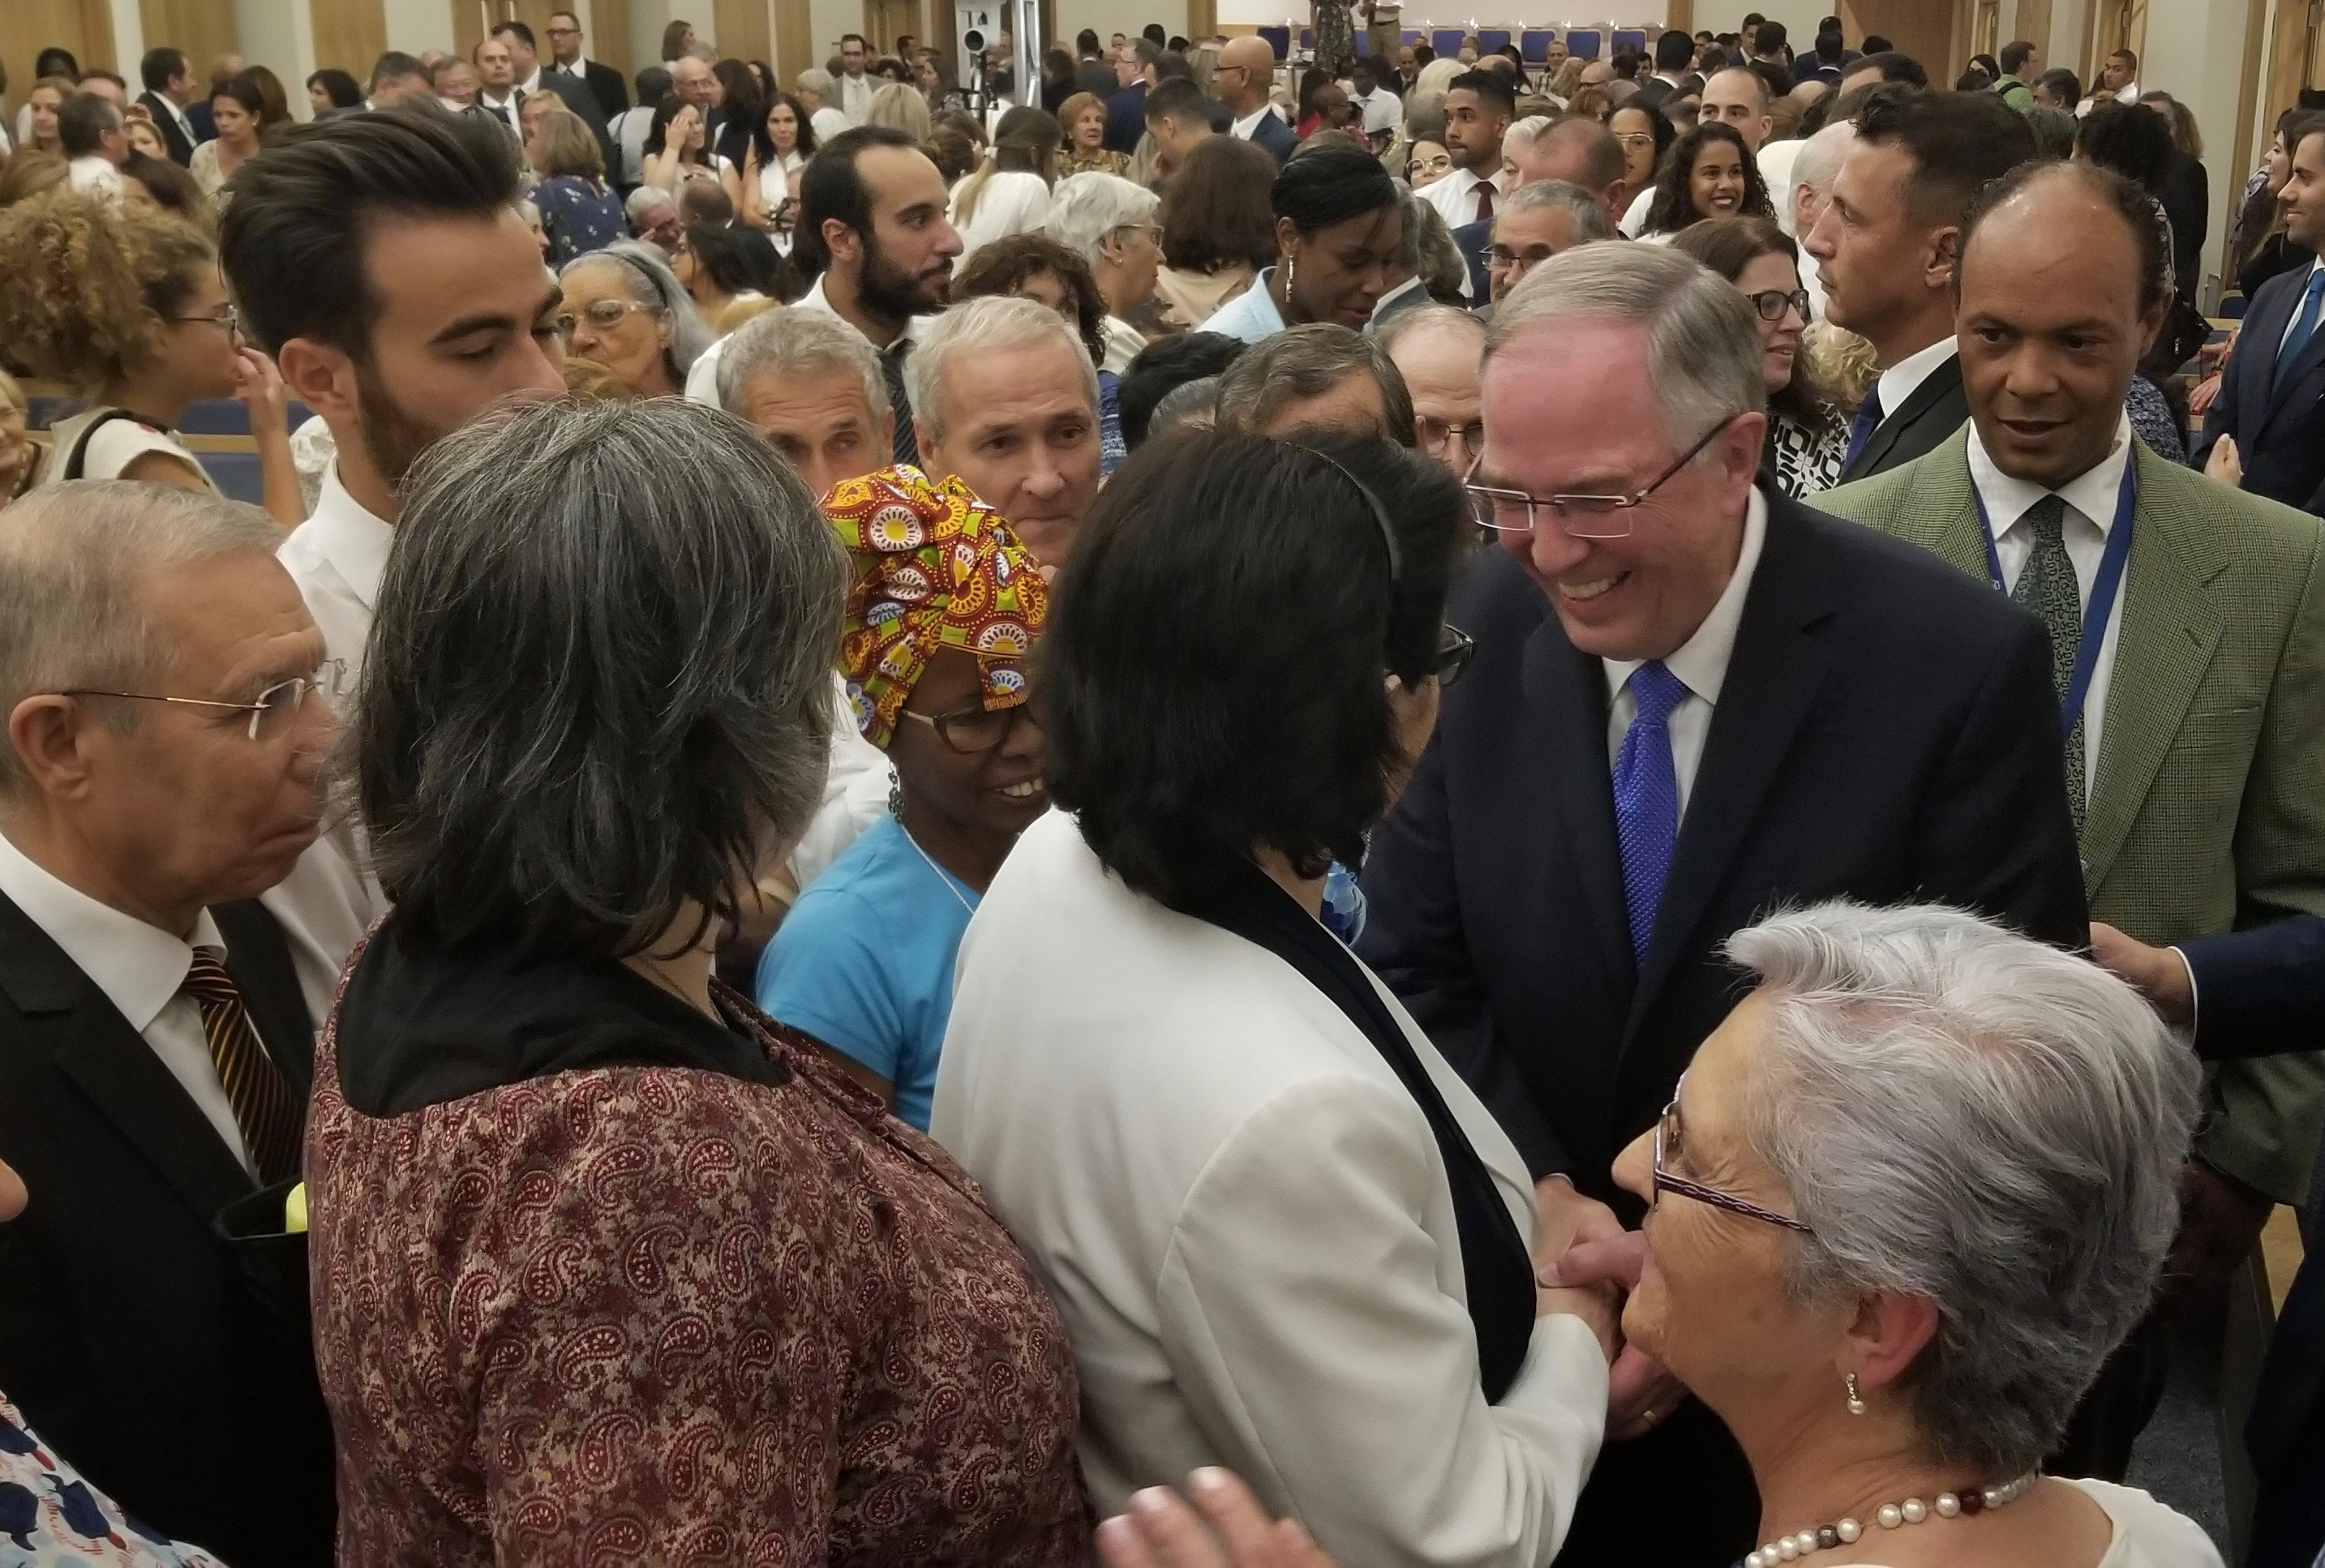 Elder Neil L. Andersen of the Quorum of the Twelve Apostles, right, greets a member following a meeting with Portugal's pioneer Latter-day Saints on Saturday, Sept. 14, 2019, in Lisbon.